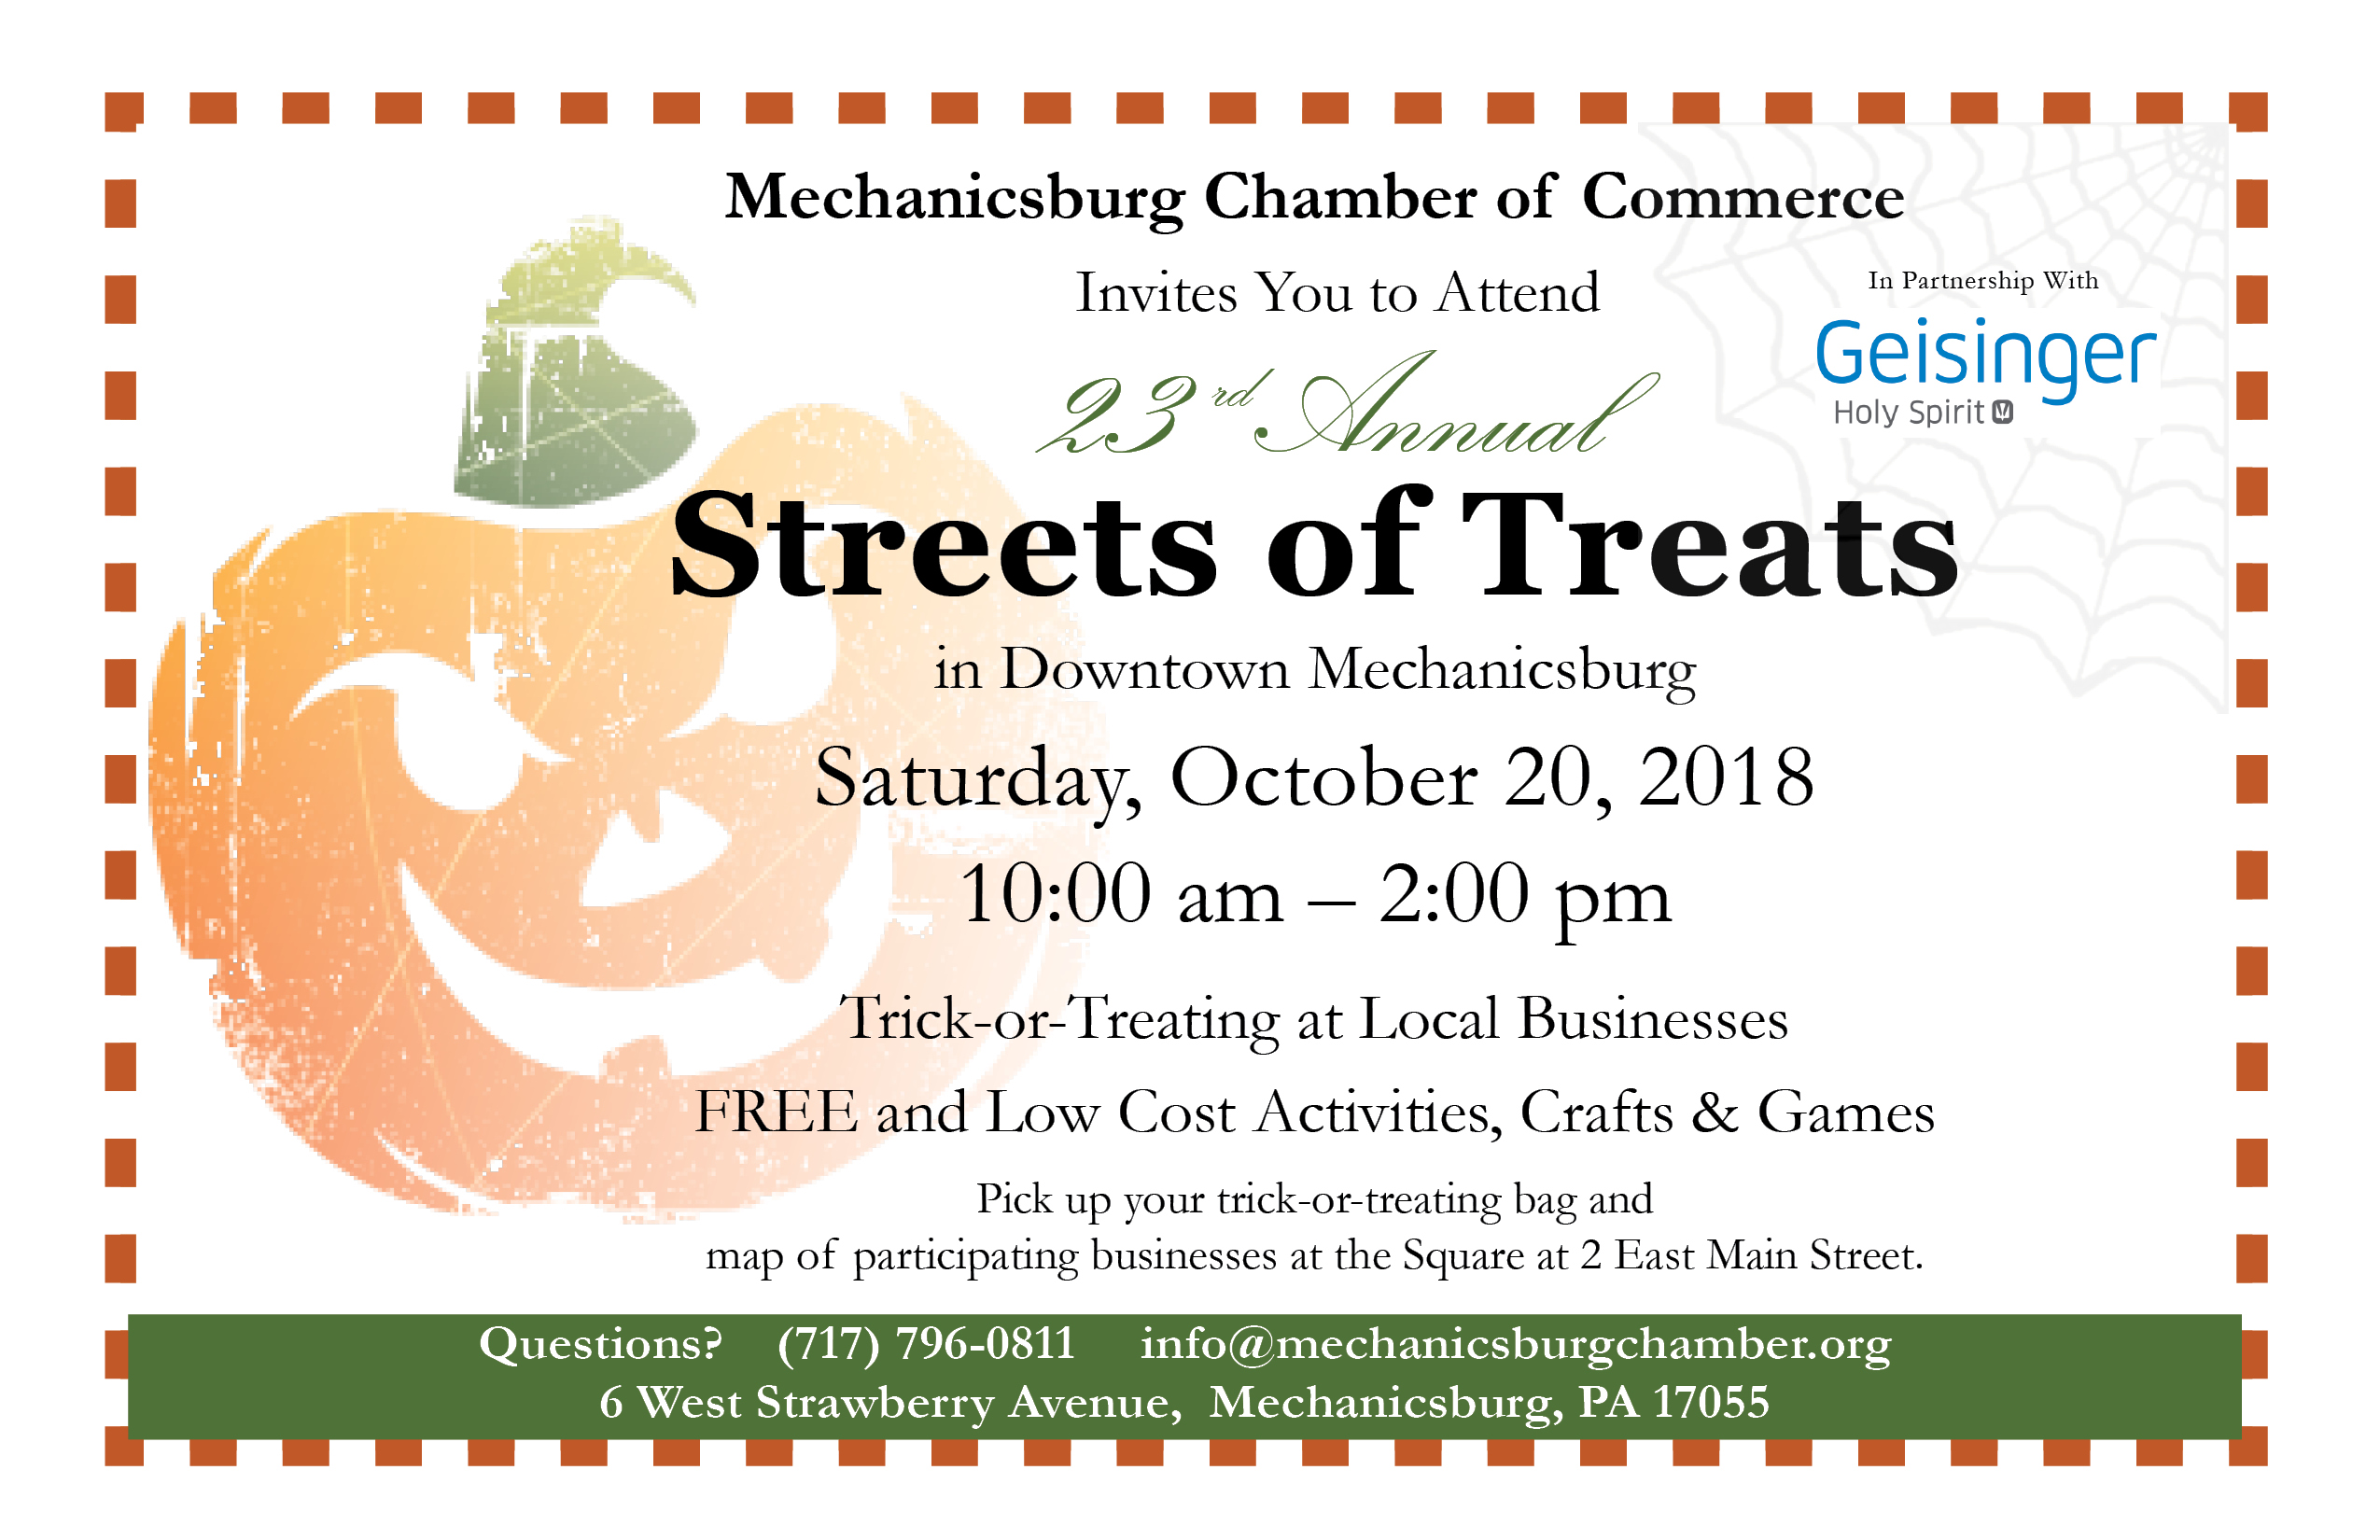 Streets of treats the mechanicsburg chamber of commerce the mechanicsburg chamber of commerce invites you to attend the 23rd annual streets of treats in downtown mechanicsburg on saturday october 20 2018 stopboris Image collections